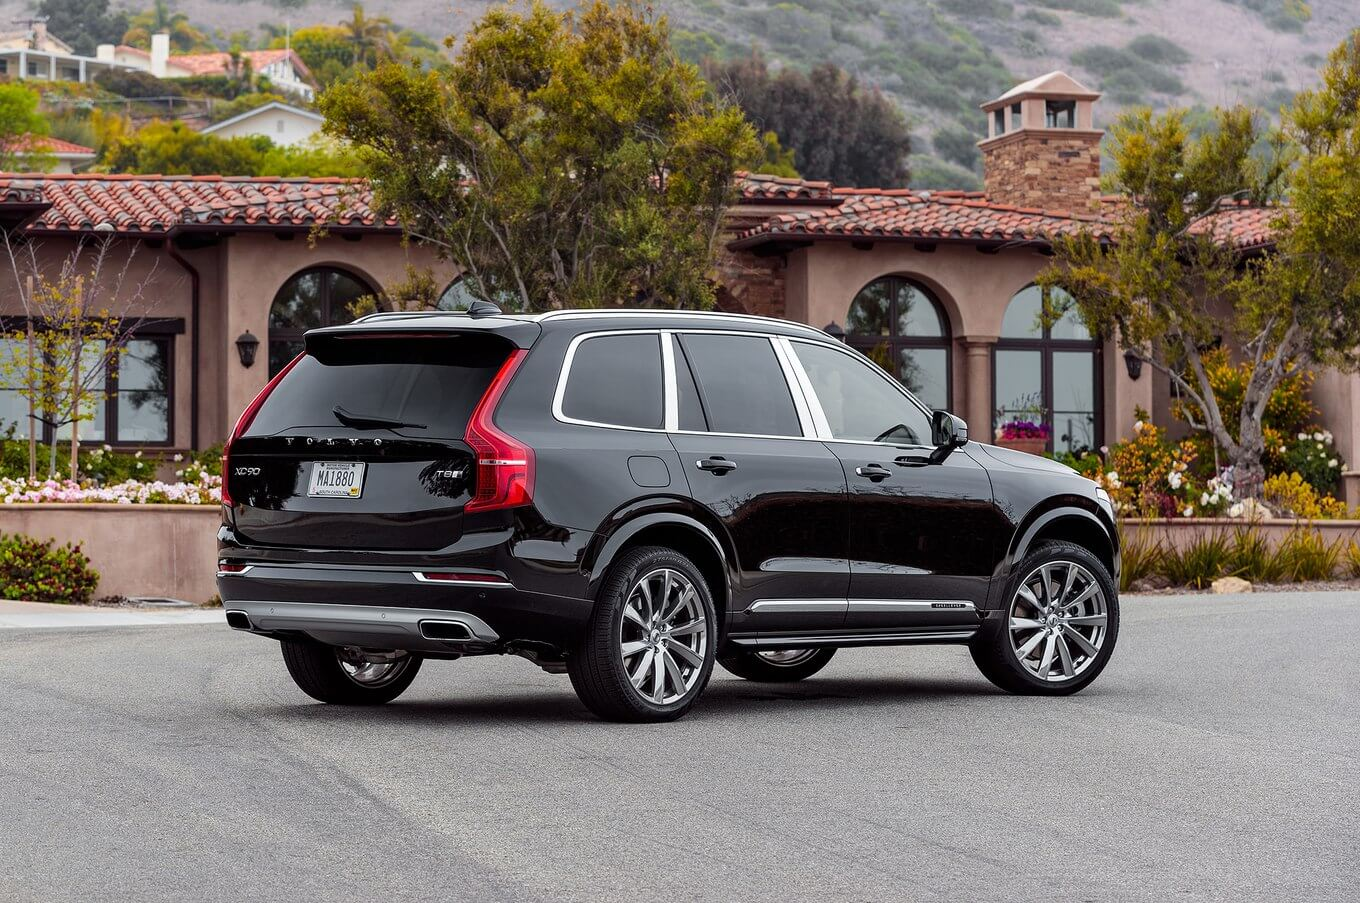 Volvo Xc90 Excellence What Every Rich Man Should Have